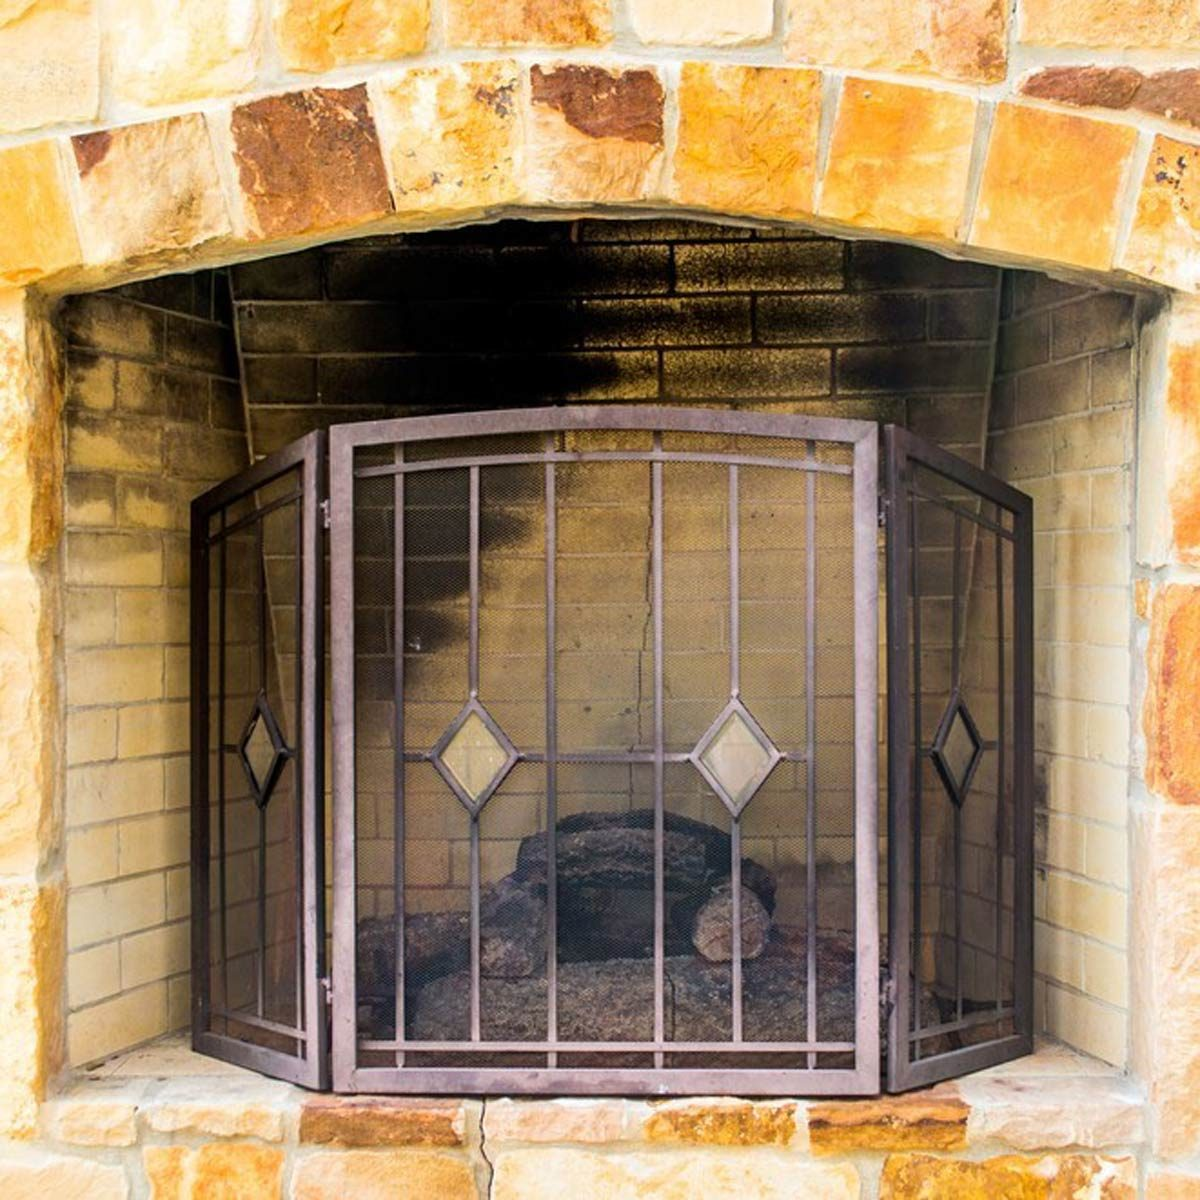 How To Operate A Fireplace 13 Must Do Steps To Make Sure Your Wood Burning Fireplace Is Safe